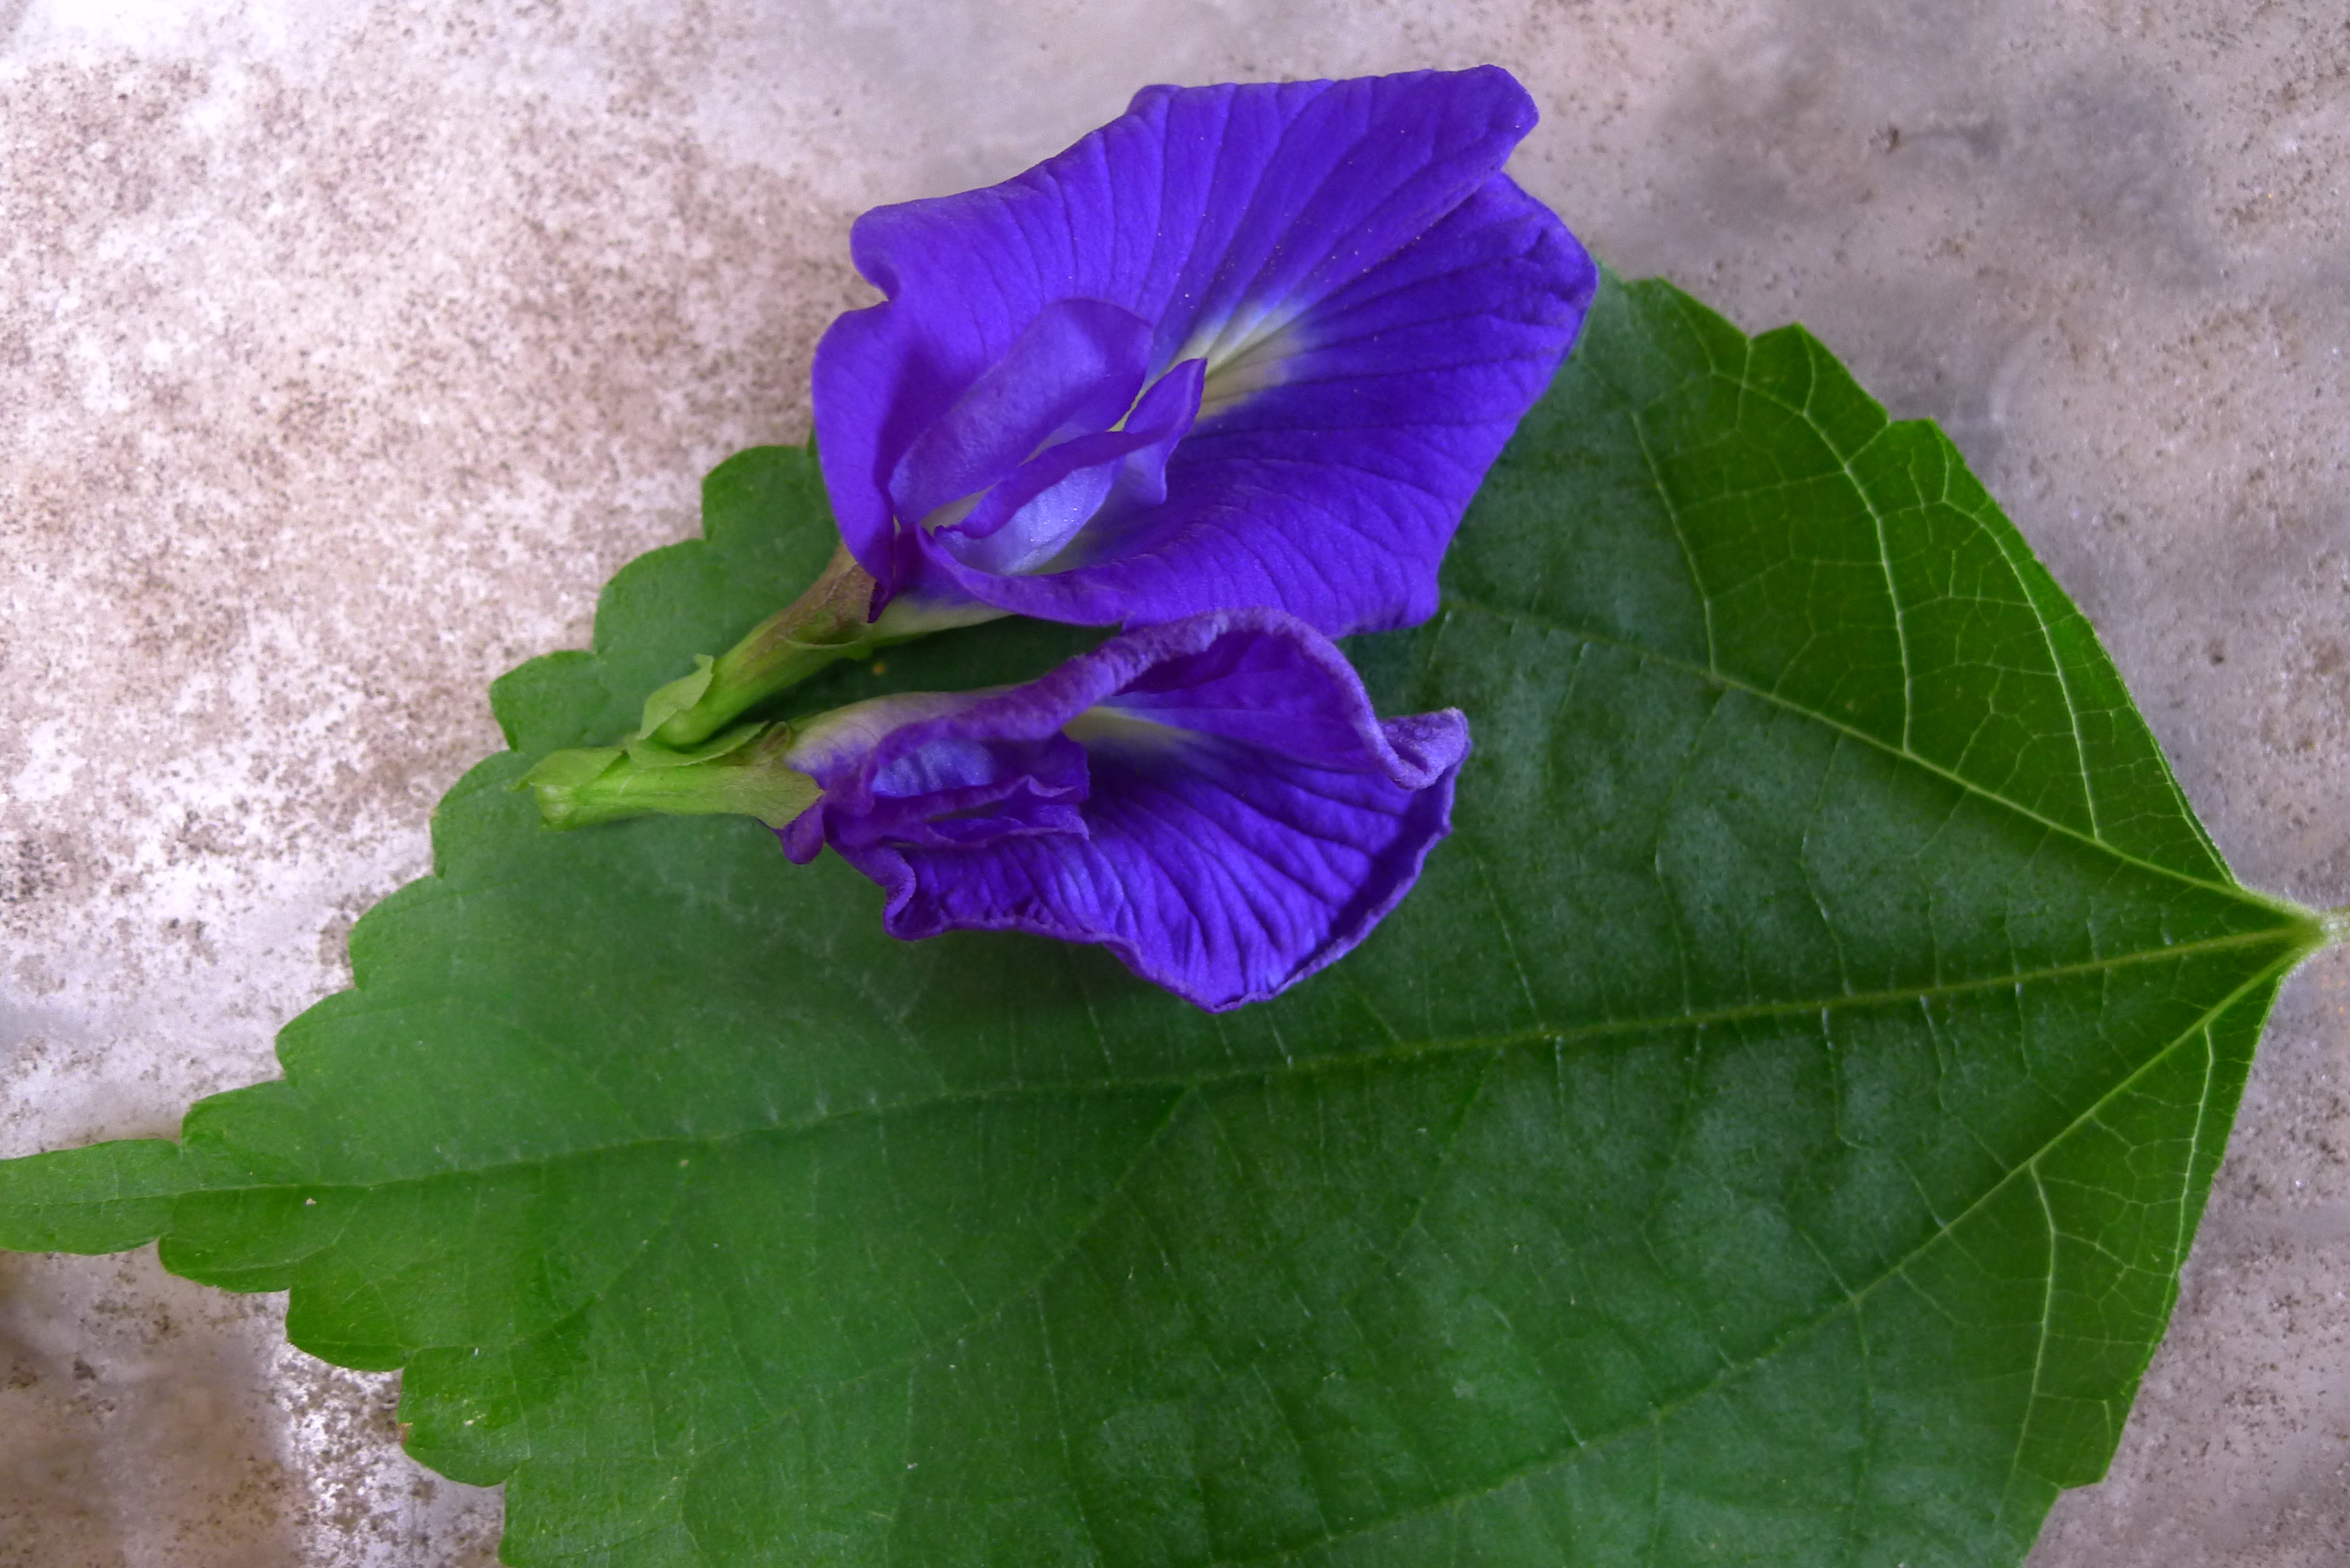 Nyonya Dumpling and butterfly pea flowers | 9 to 5 Travel Blog